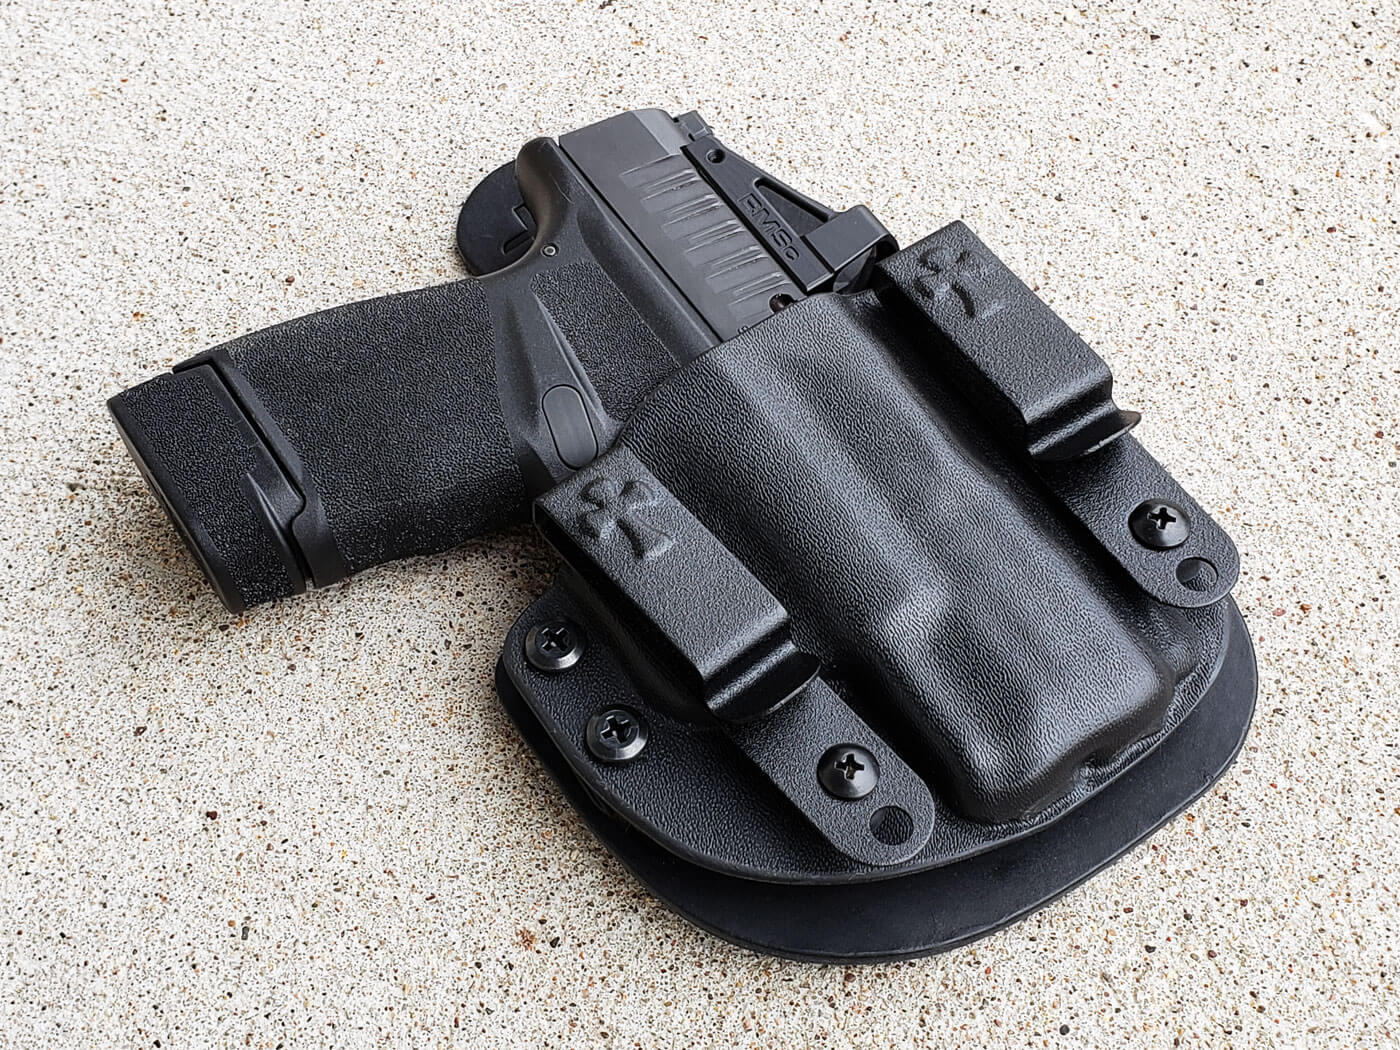 CrossBreed Reckoning holster with a Hellcat